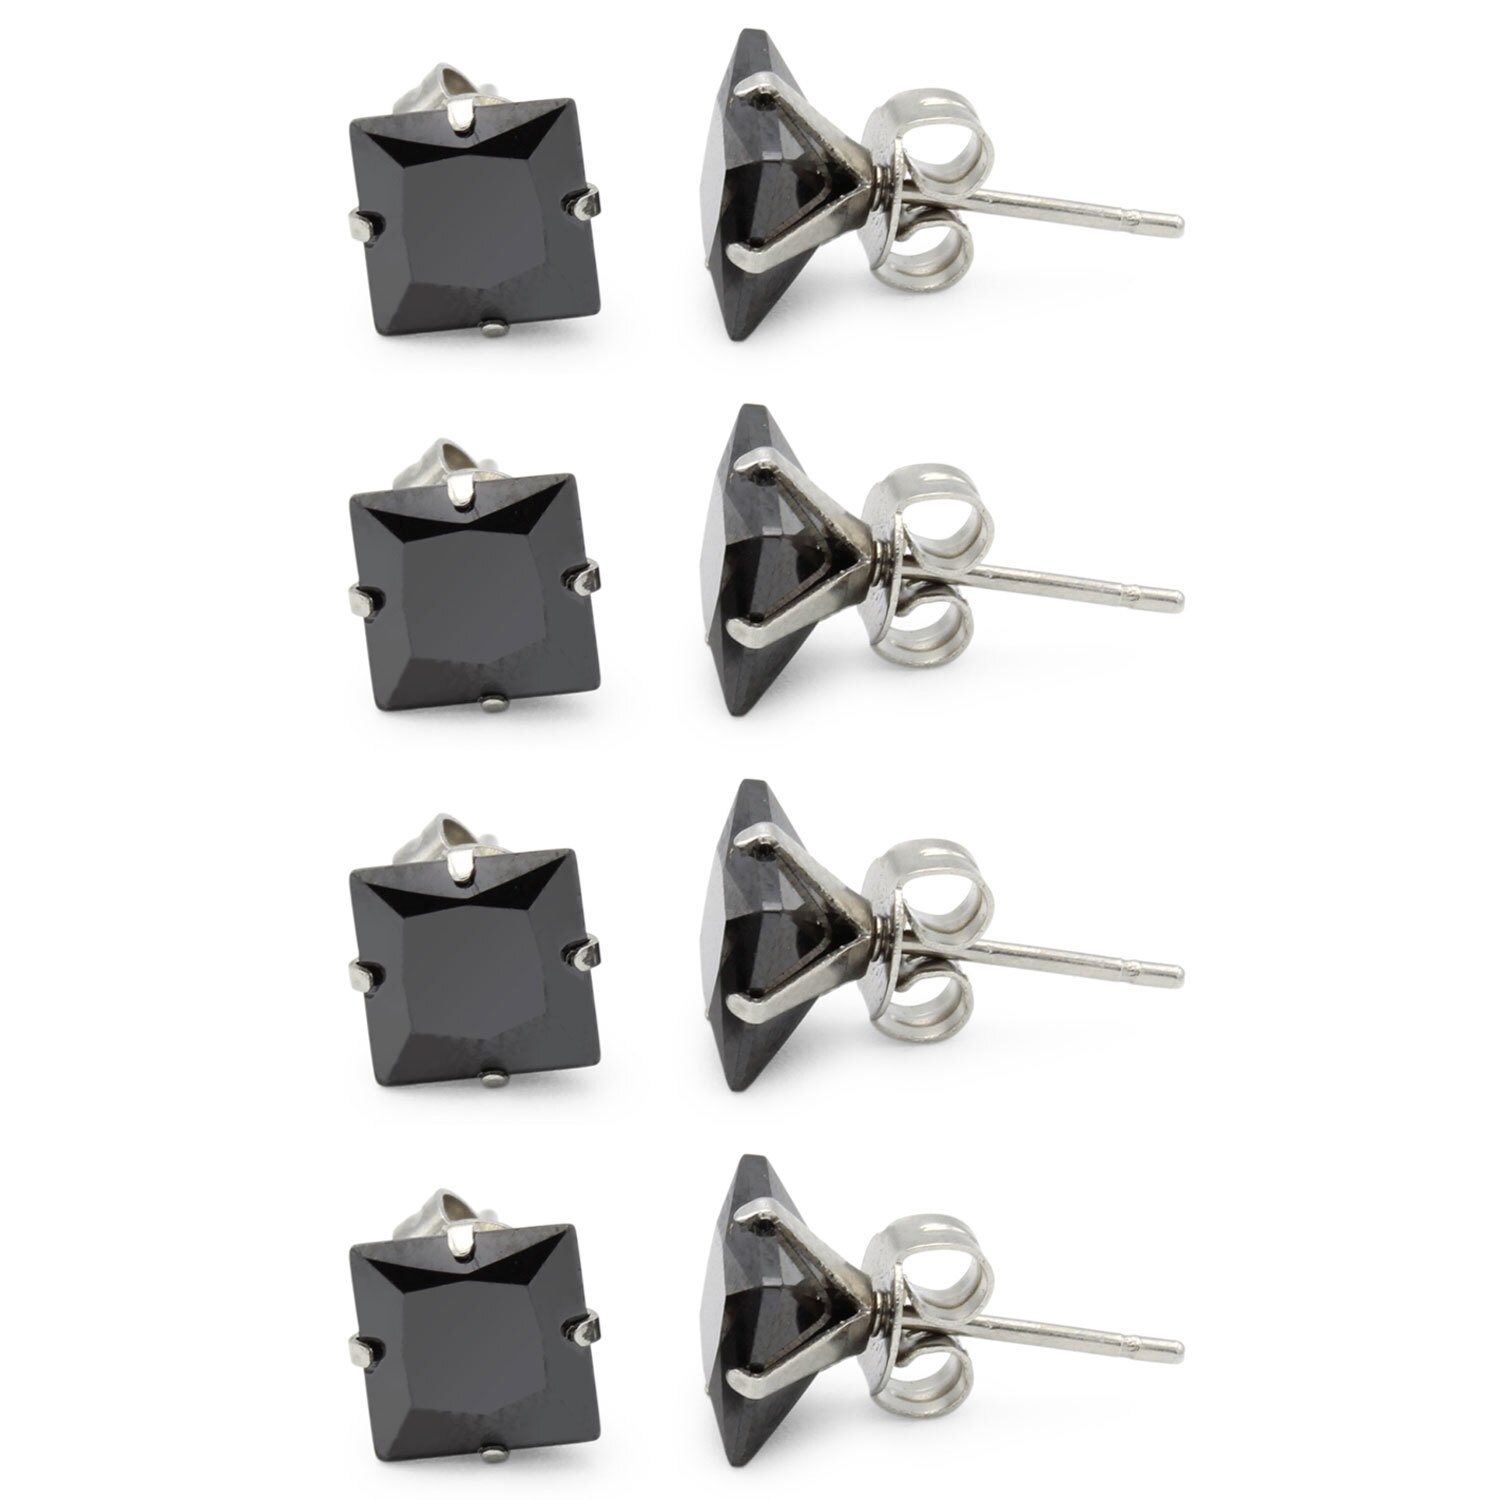 0eefb90703f4 Black Cubic Zirconia Unisex Stud Earrings Stainless Steel Jewelry  Collection Square Studs 3-10 mm